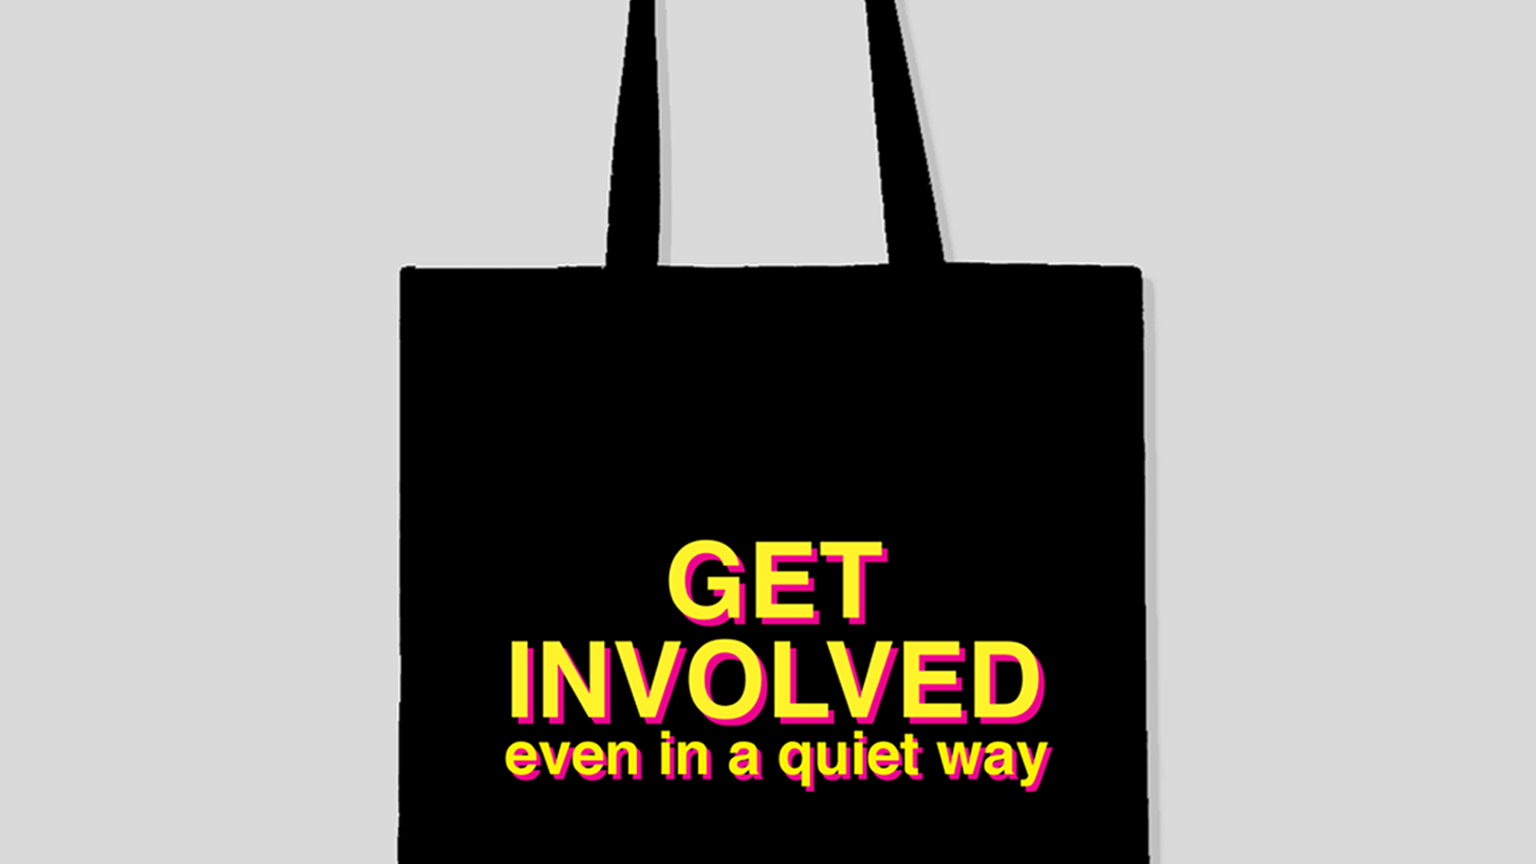 GET INVOLVED even in a quiet way